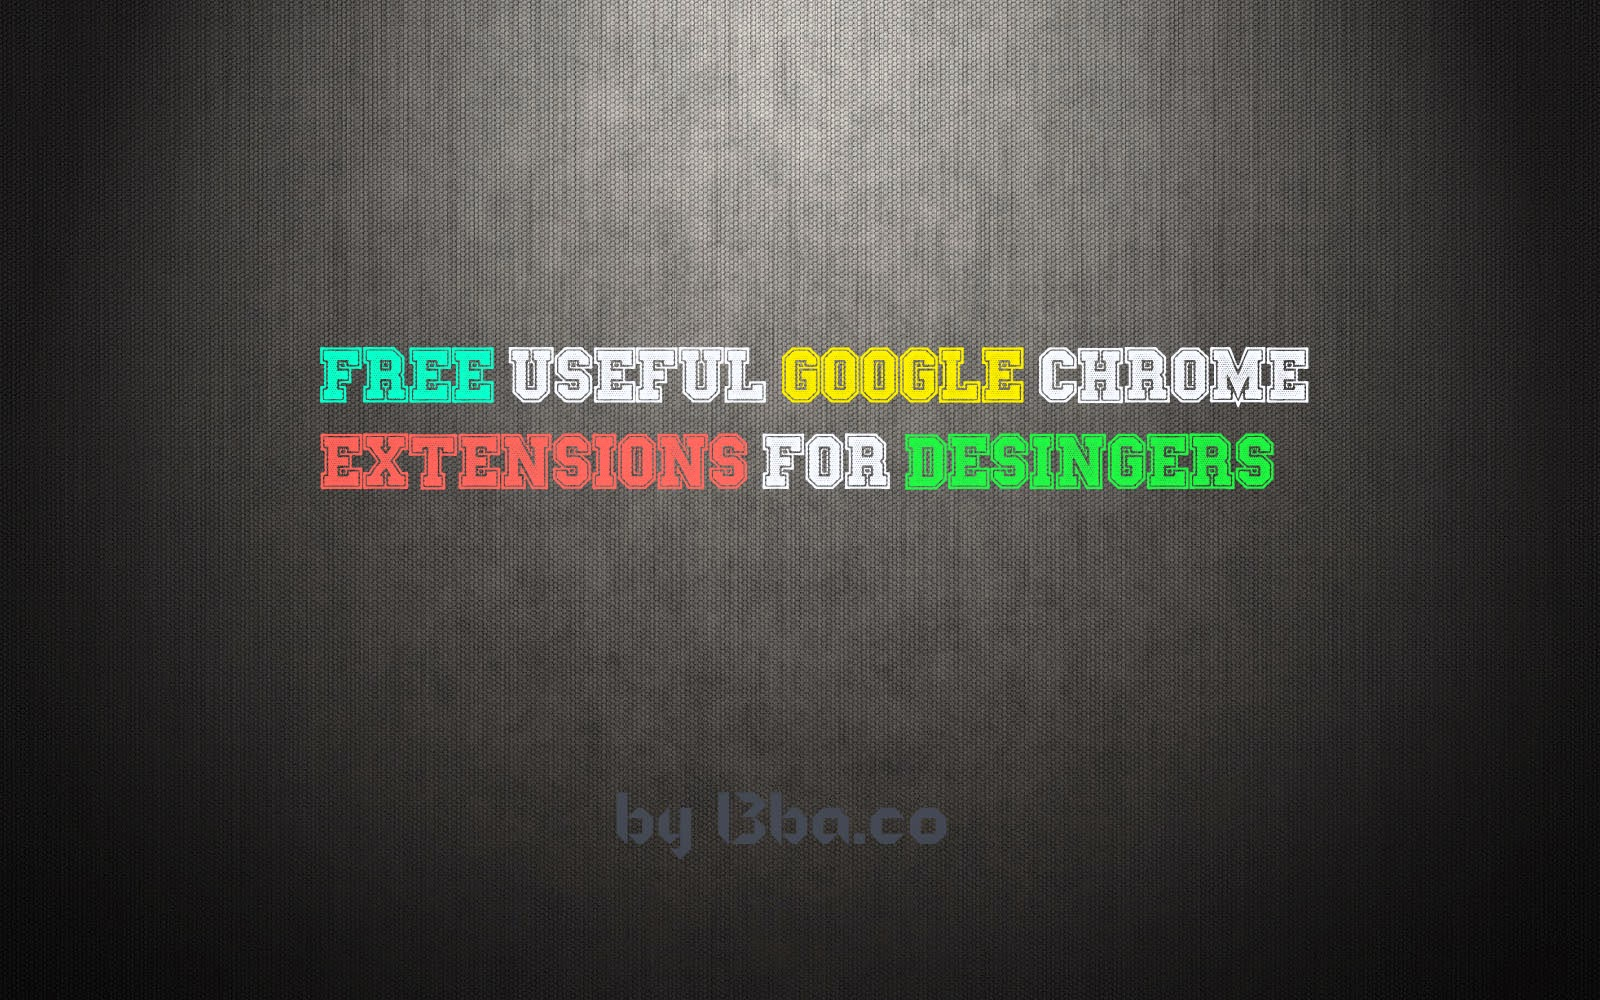 Free Useful Google Chrome Extensions for Developers